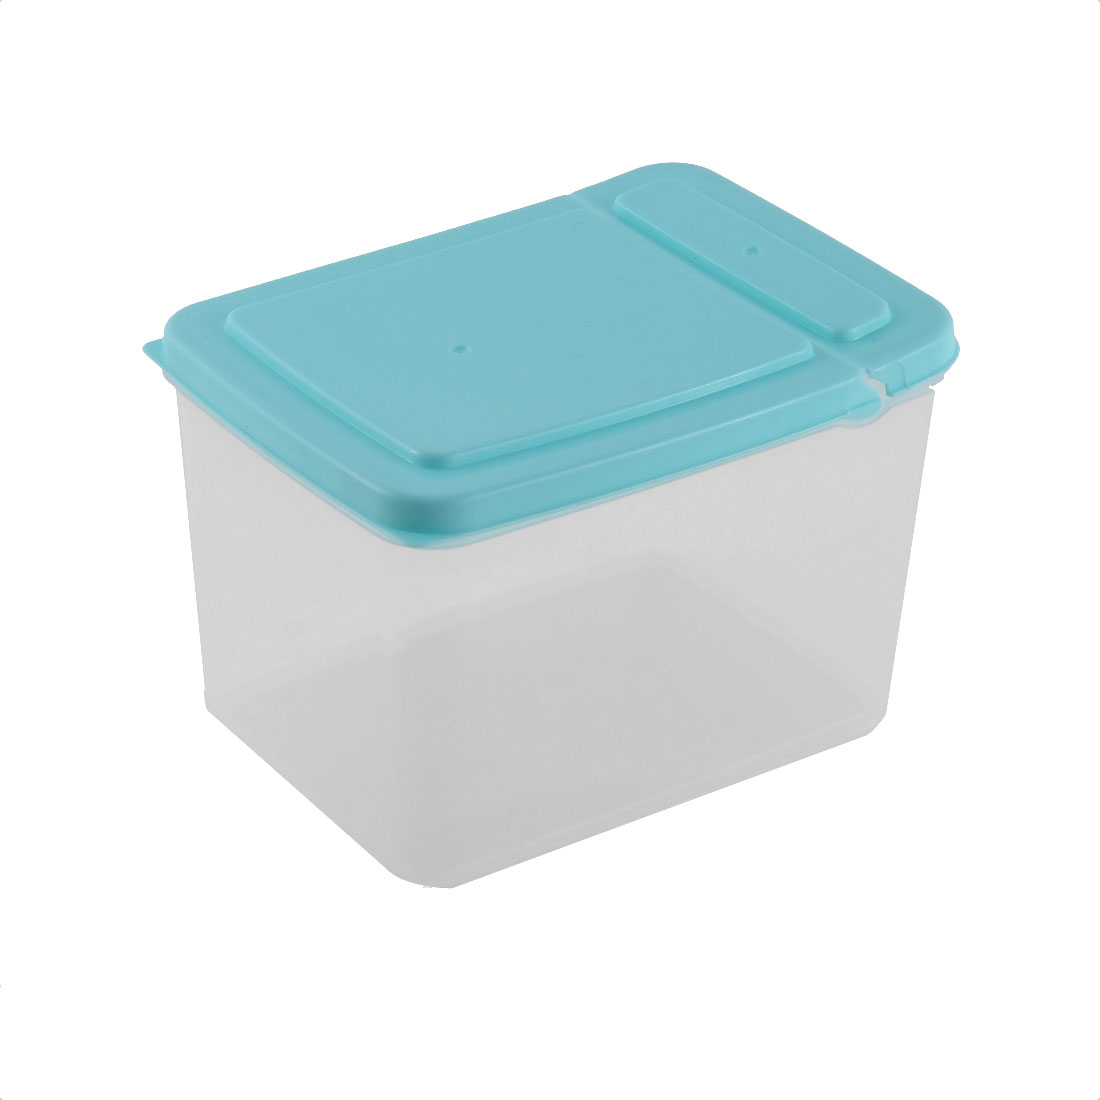 Household Pantry Refrigerator Freezer Plastic Transparent Storage Box Keeper Blue